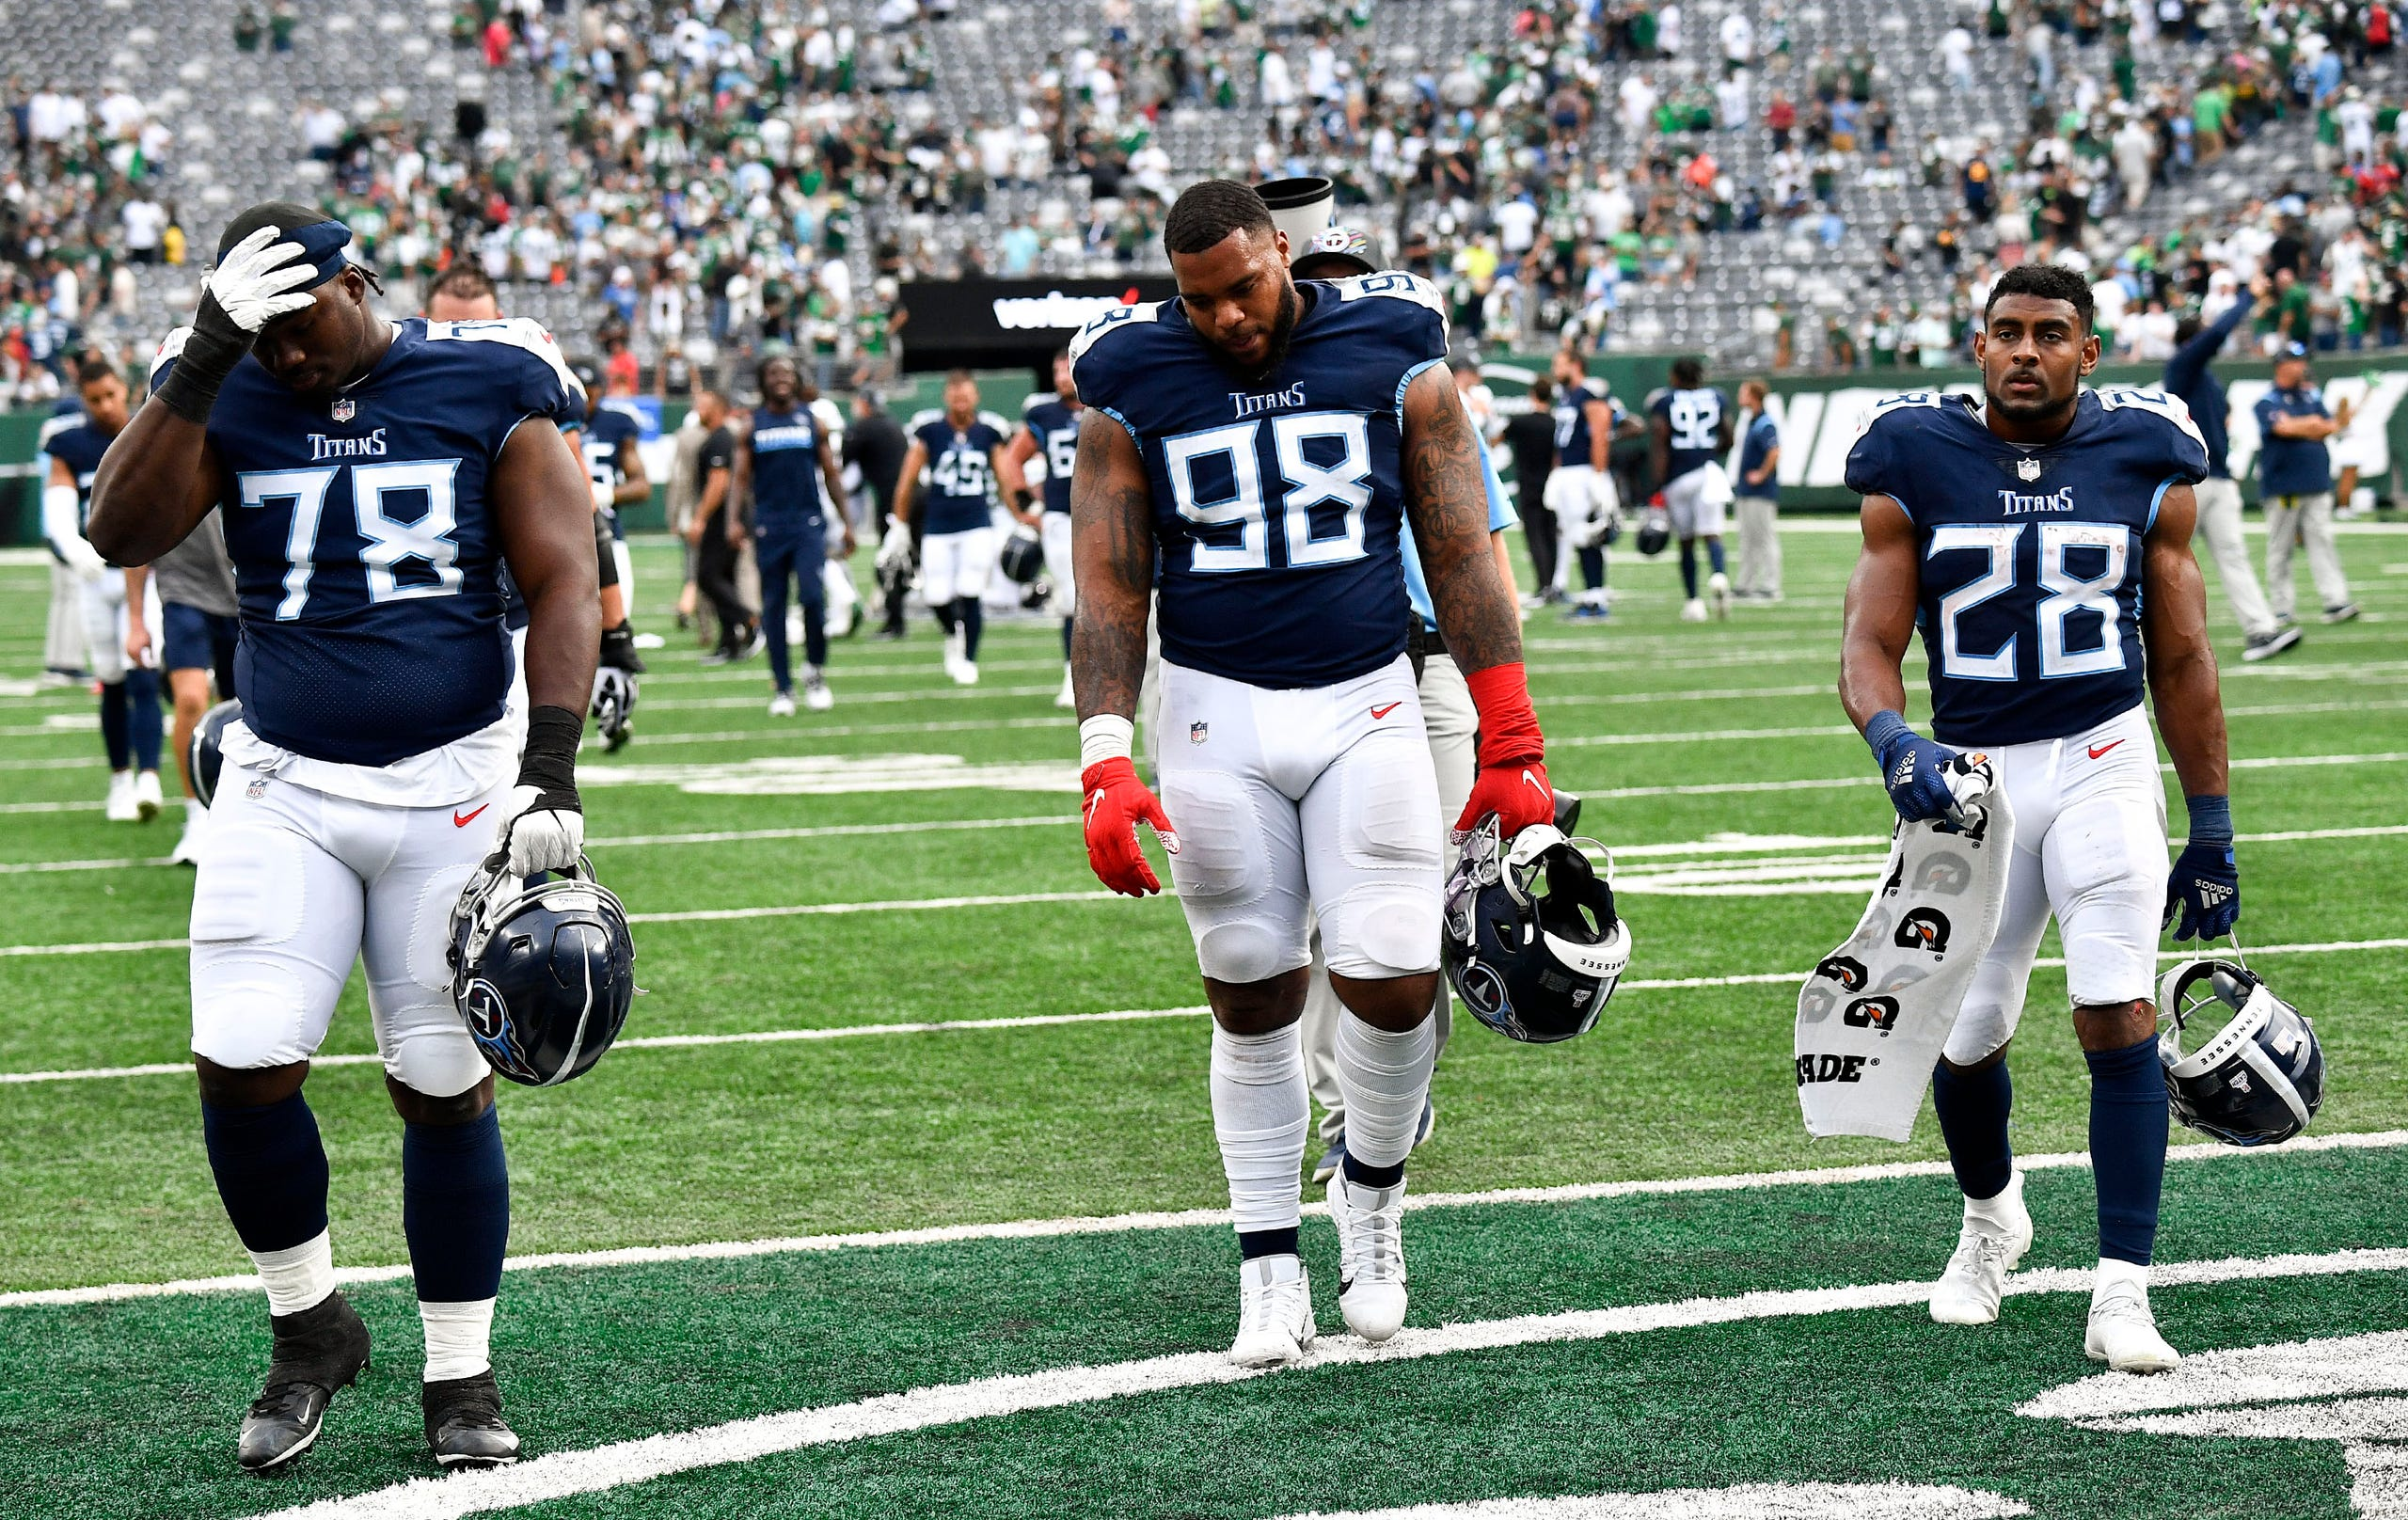 The Titans leave the field after losing to the Jets in overtime at MetLife Stadium Sunday, Oct. 3, 2021 in East Rutherford, N.J.